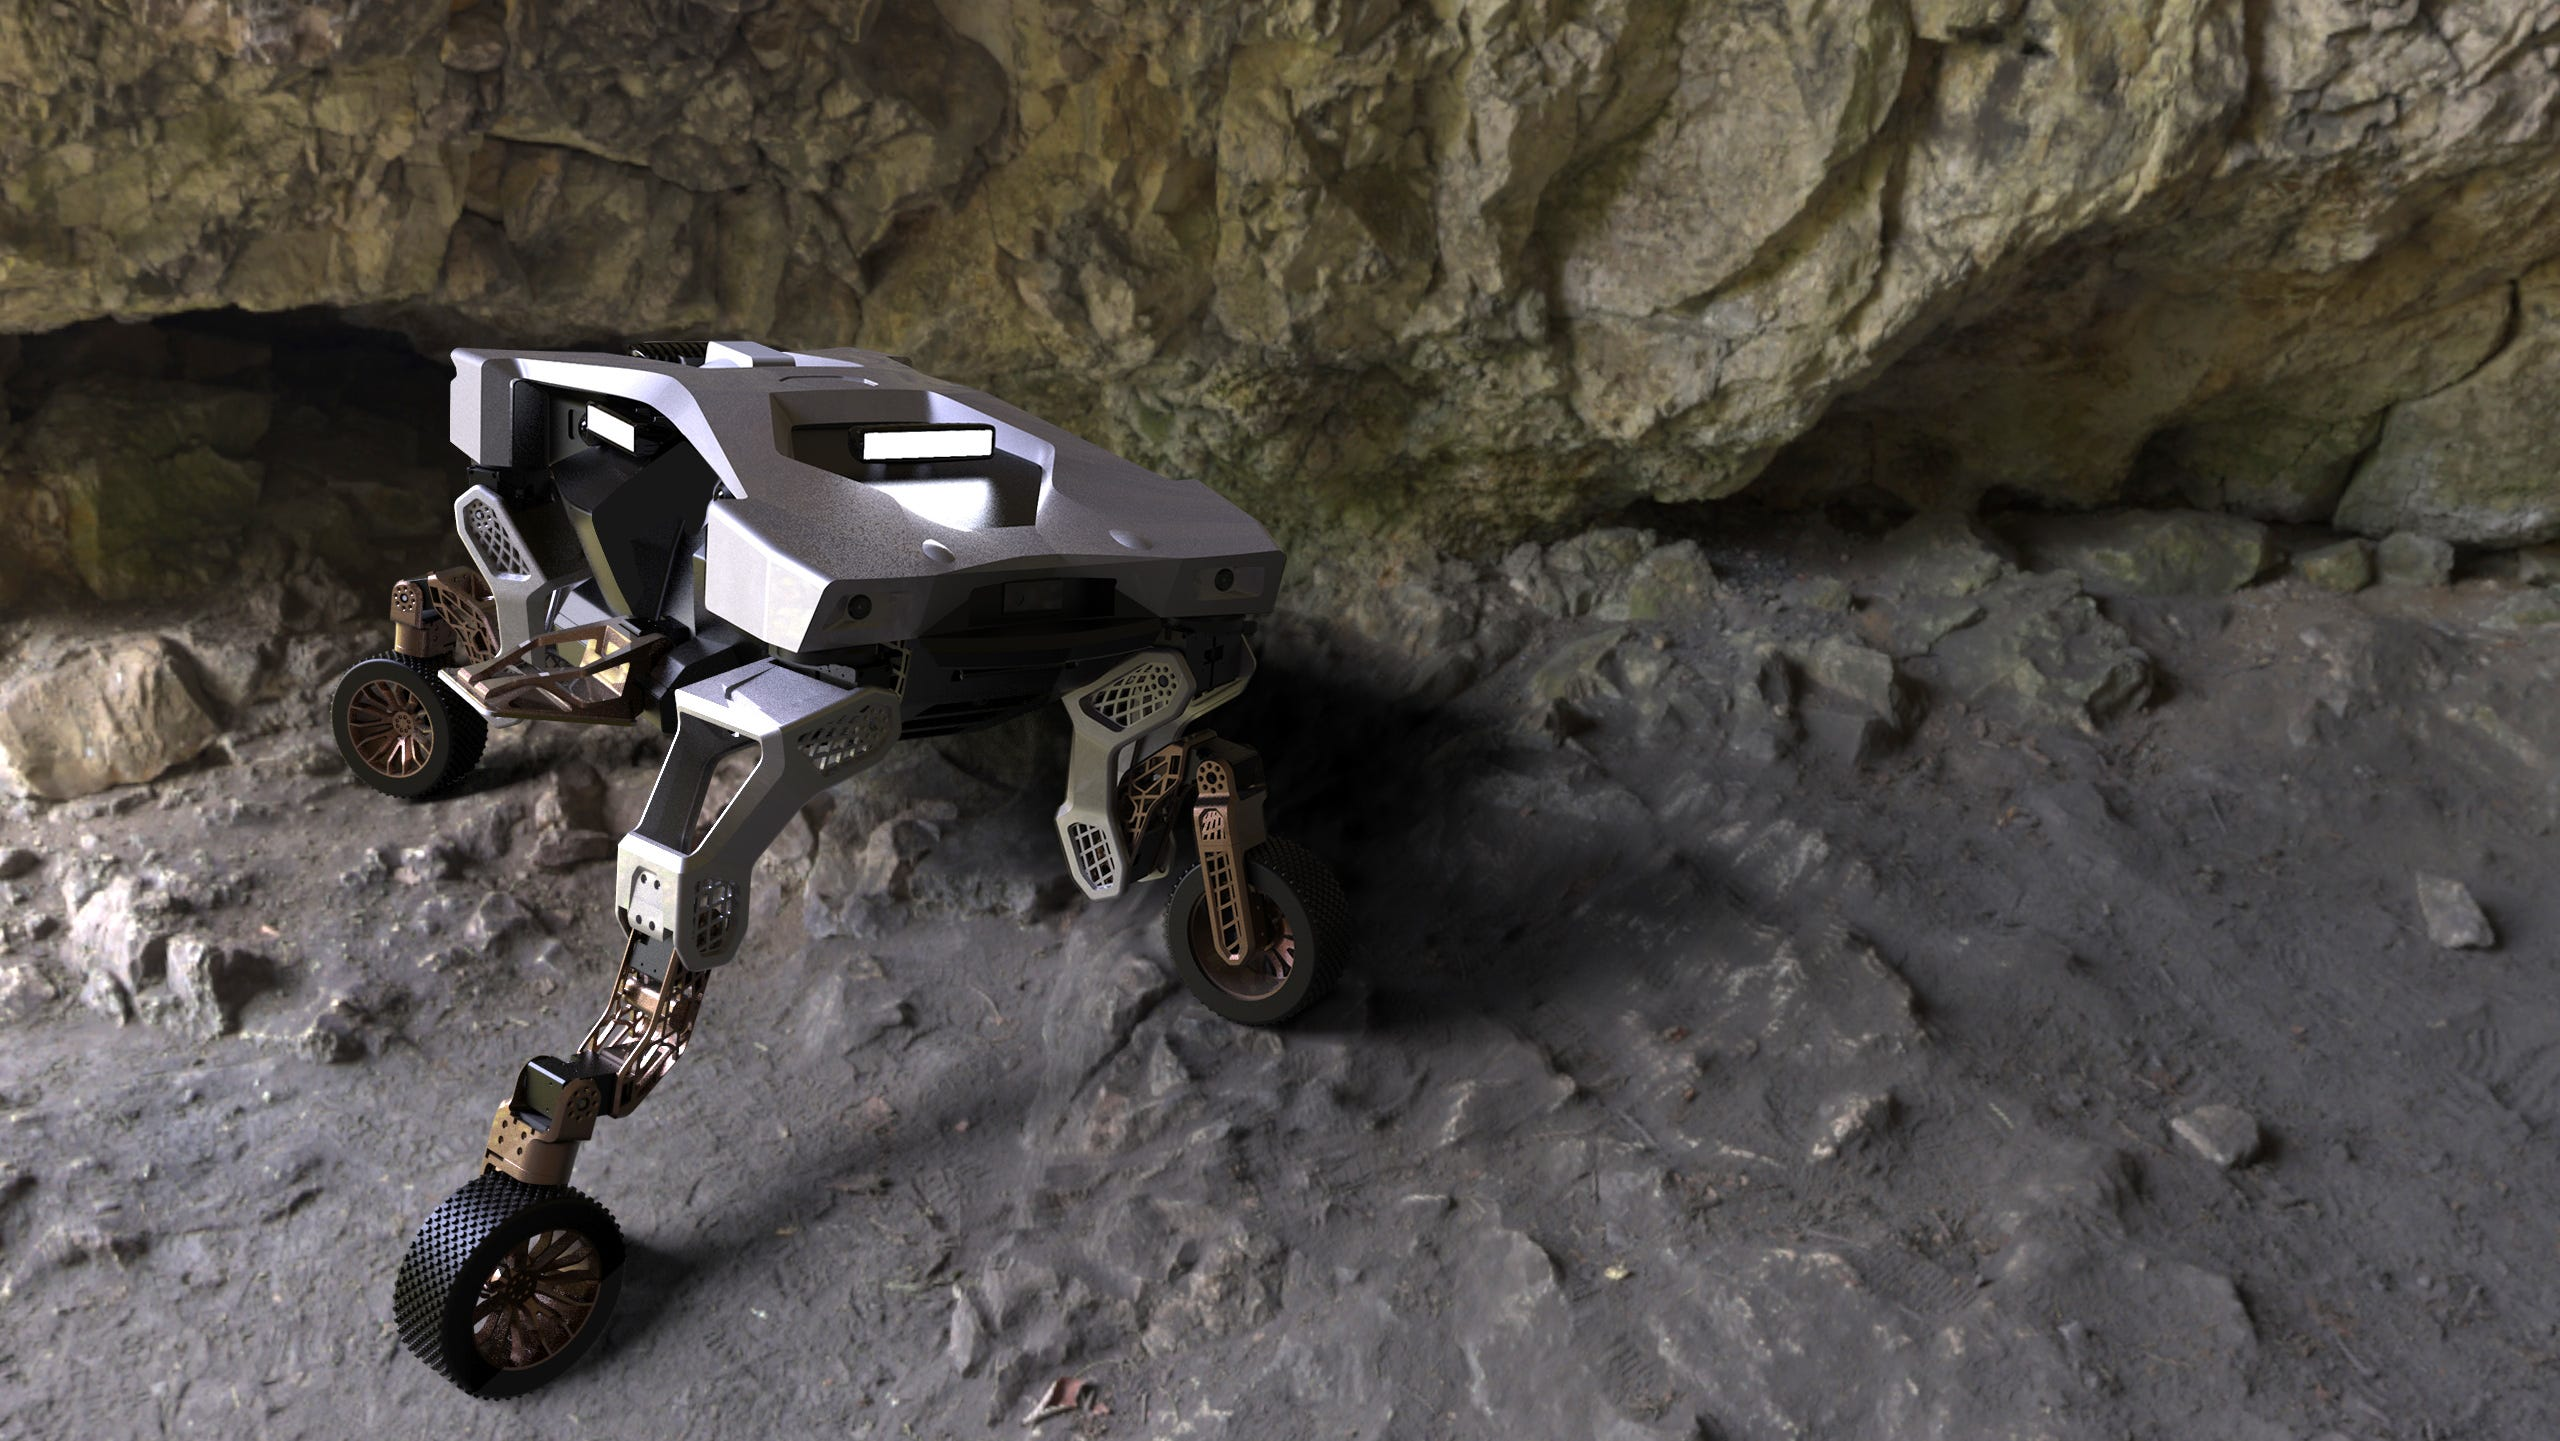 A Hyundai Tiger X-1 with outstretched legs in a cave.